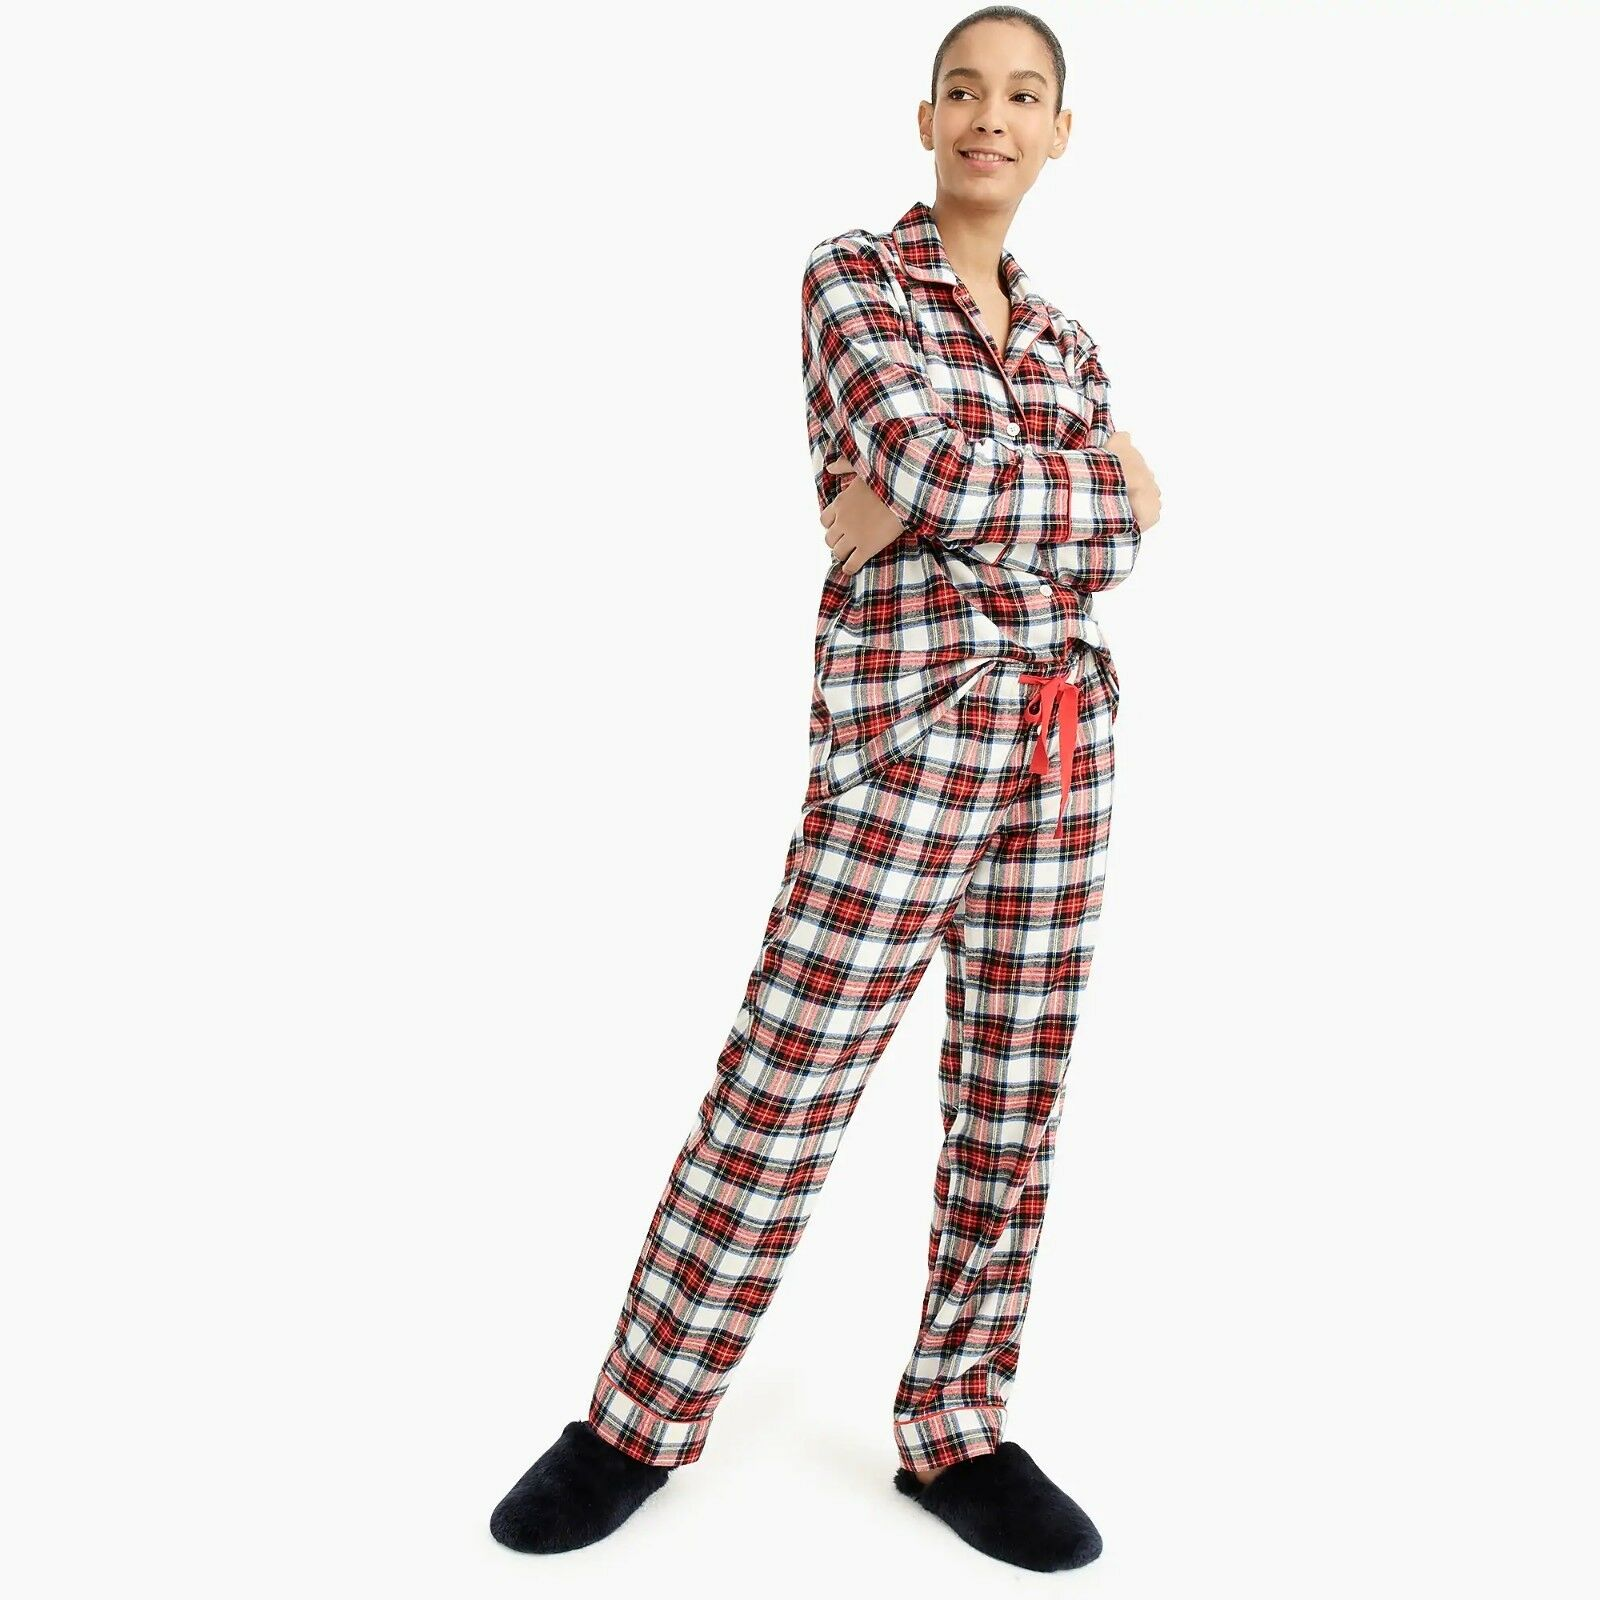 New J. Crew Women's Flannel Pajama Set in White-Out Plaid - Size Medium